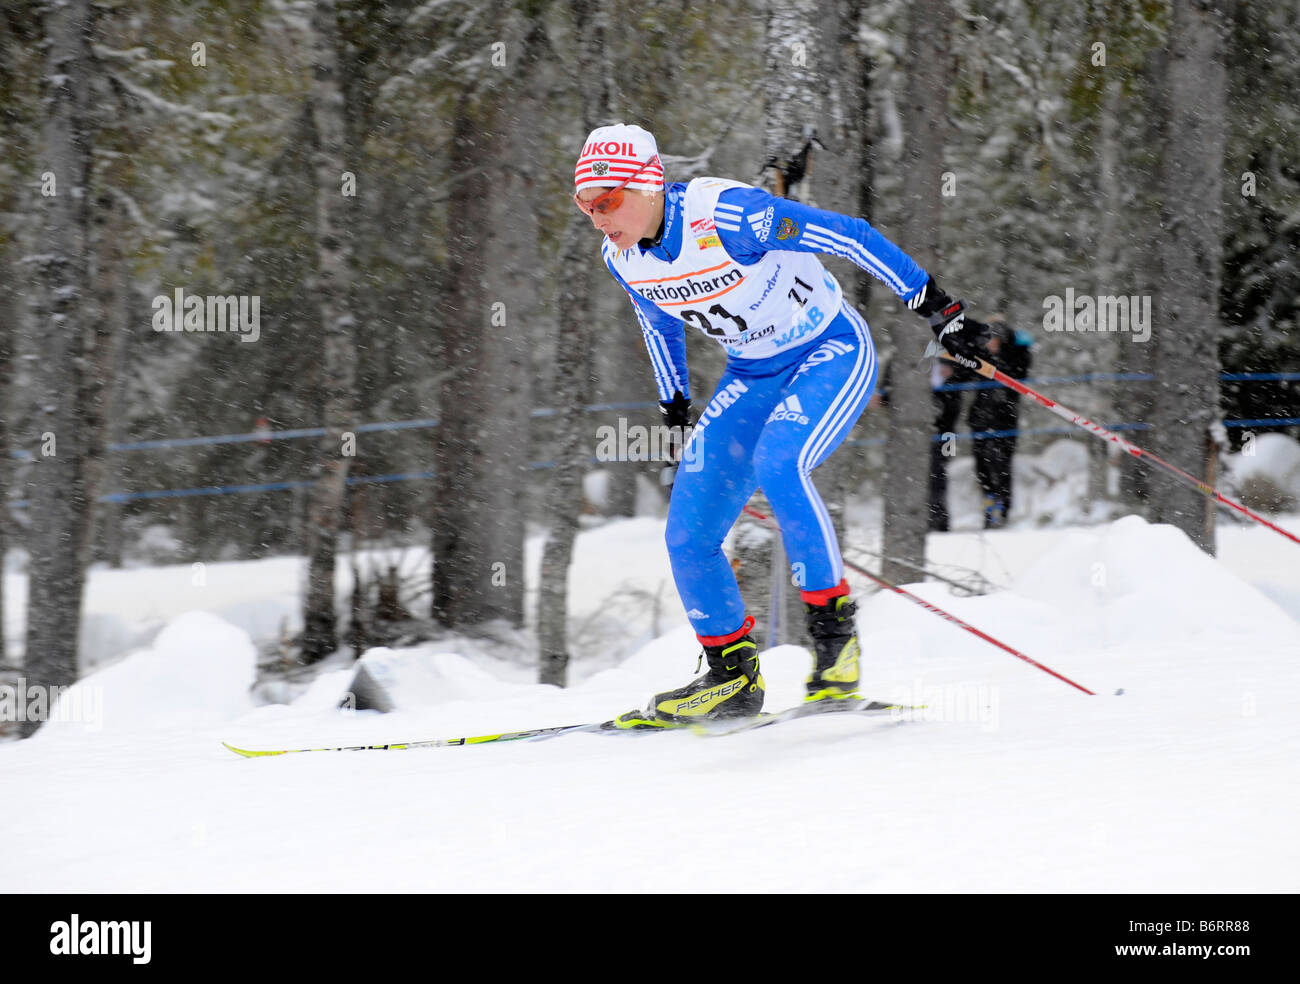 Marina Chernousova, Russia. The world cup competitions in Gällivare, Sweden 2008 11 22 - Stock Image